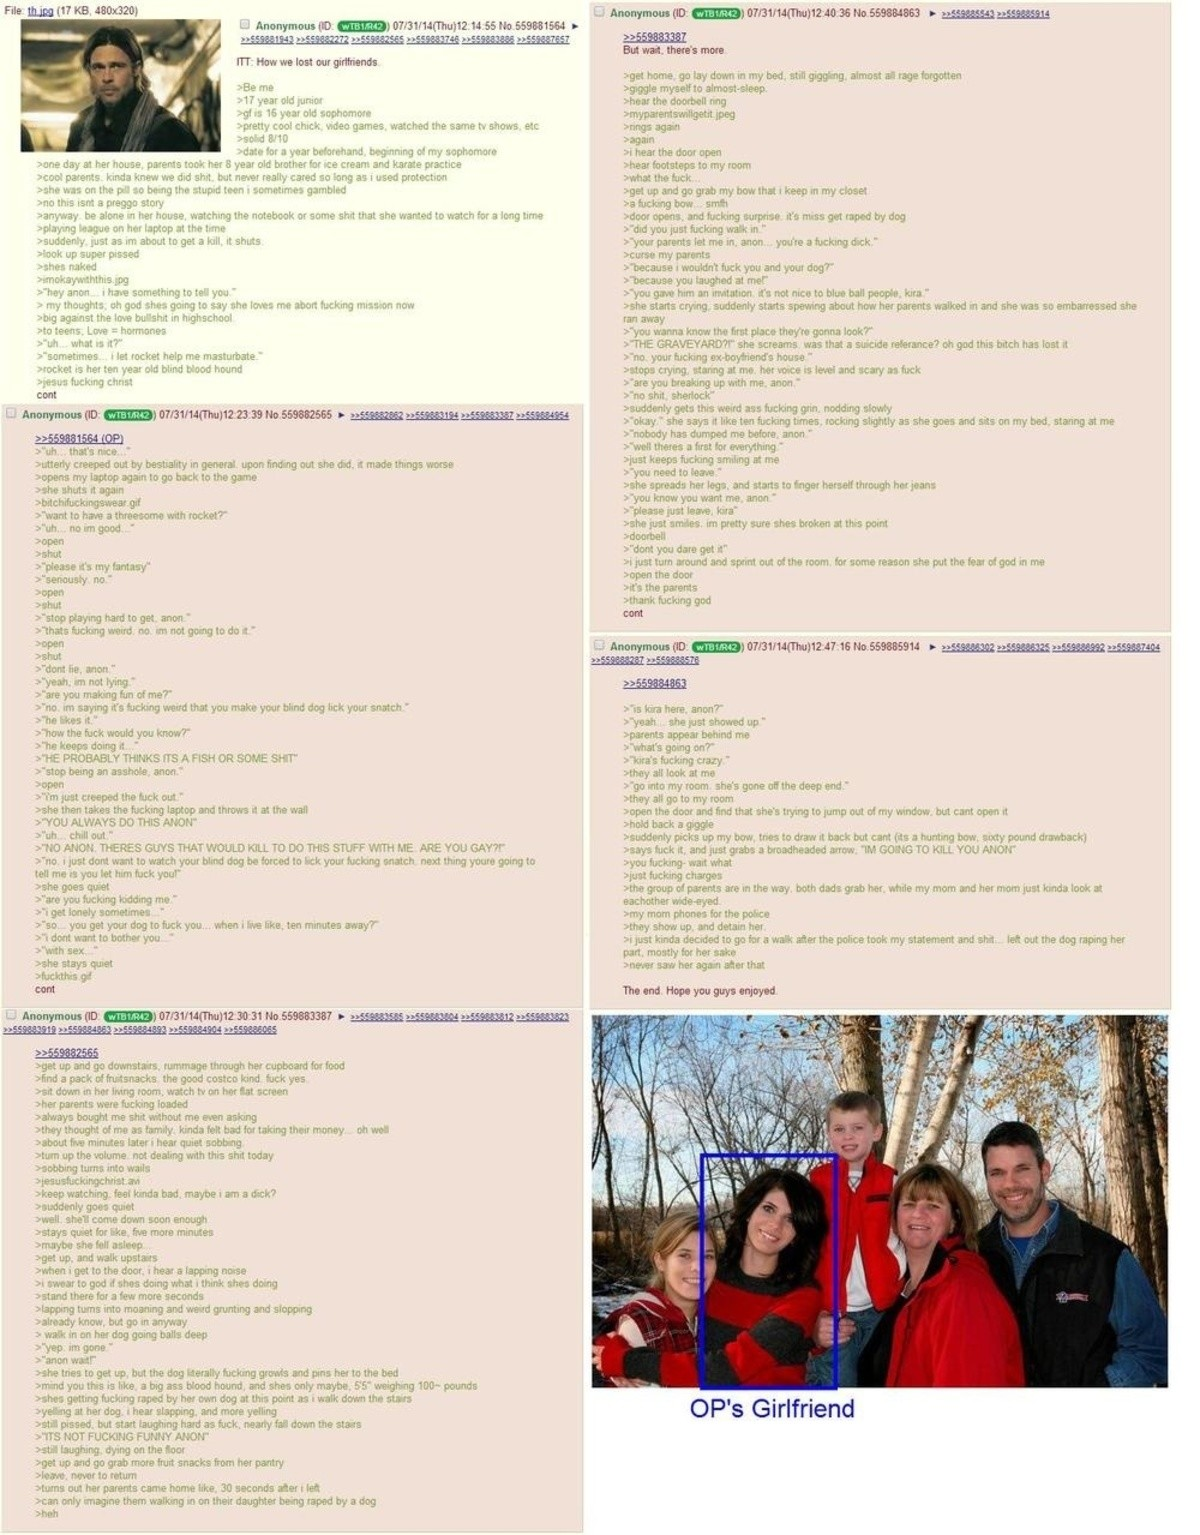 How anon lost his gf. join list: Chanoholic (322 subs)Mention History.. I forgot what this was. I was reading the first part completely oblivious. ''Sometimes... I let Rocket help me masturbate.'' It all came flooding back.